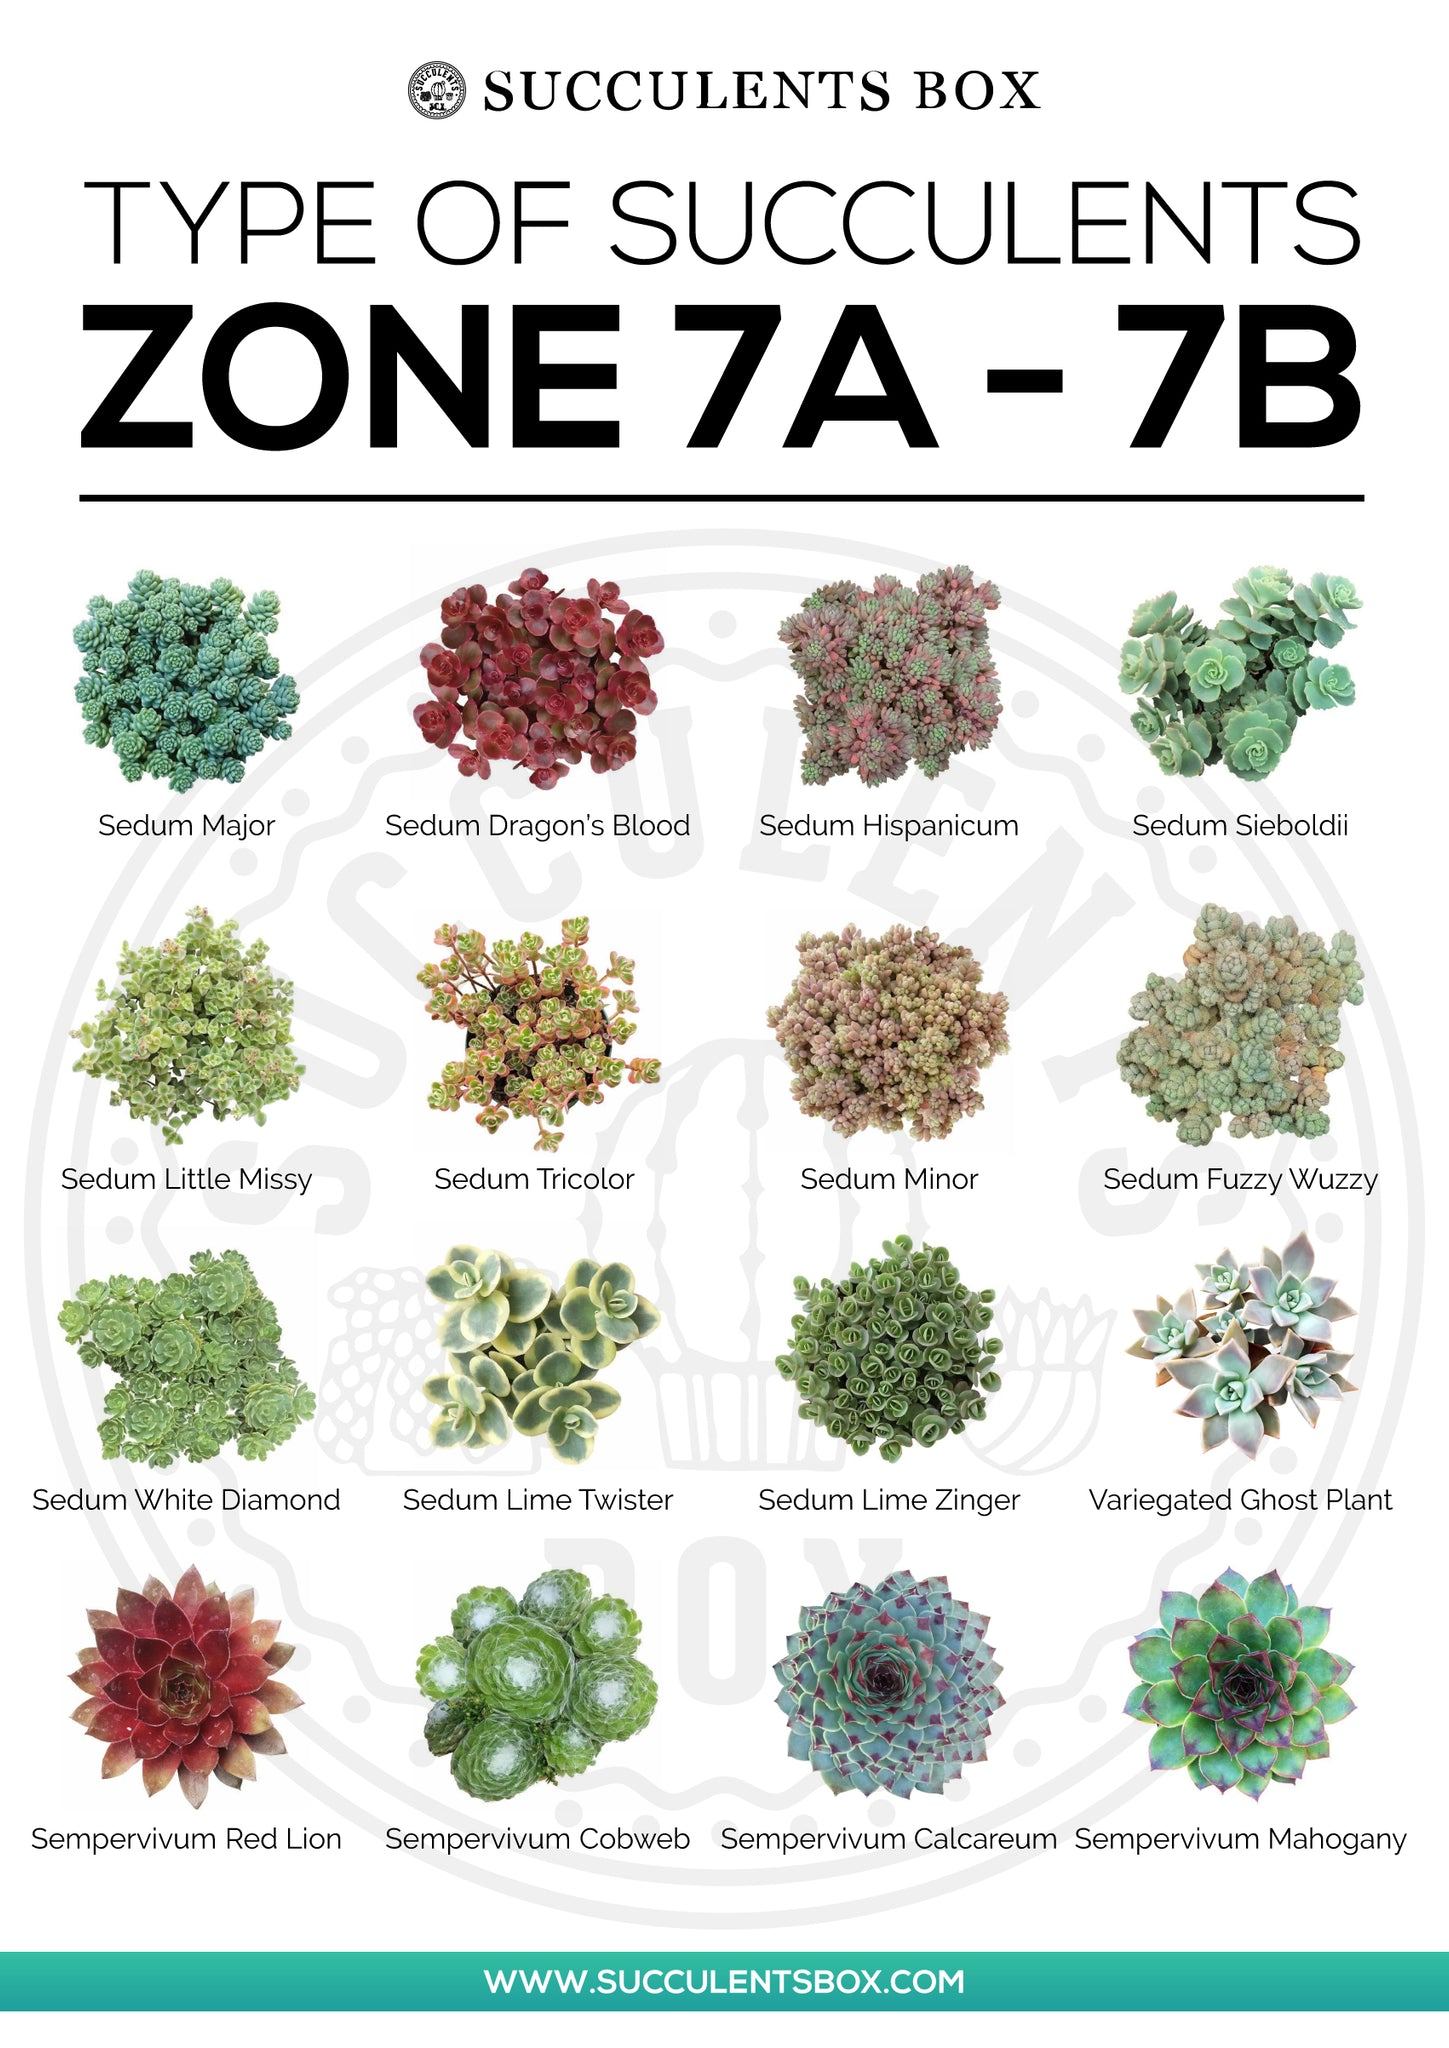 Types of Succulents Zone